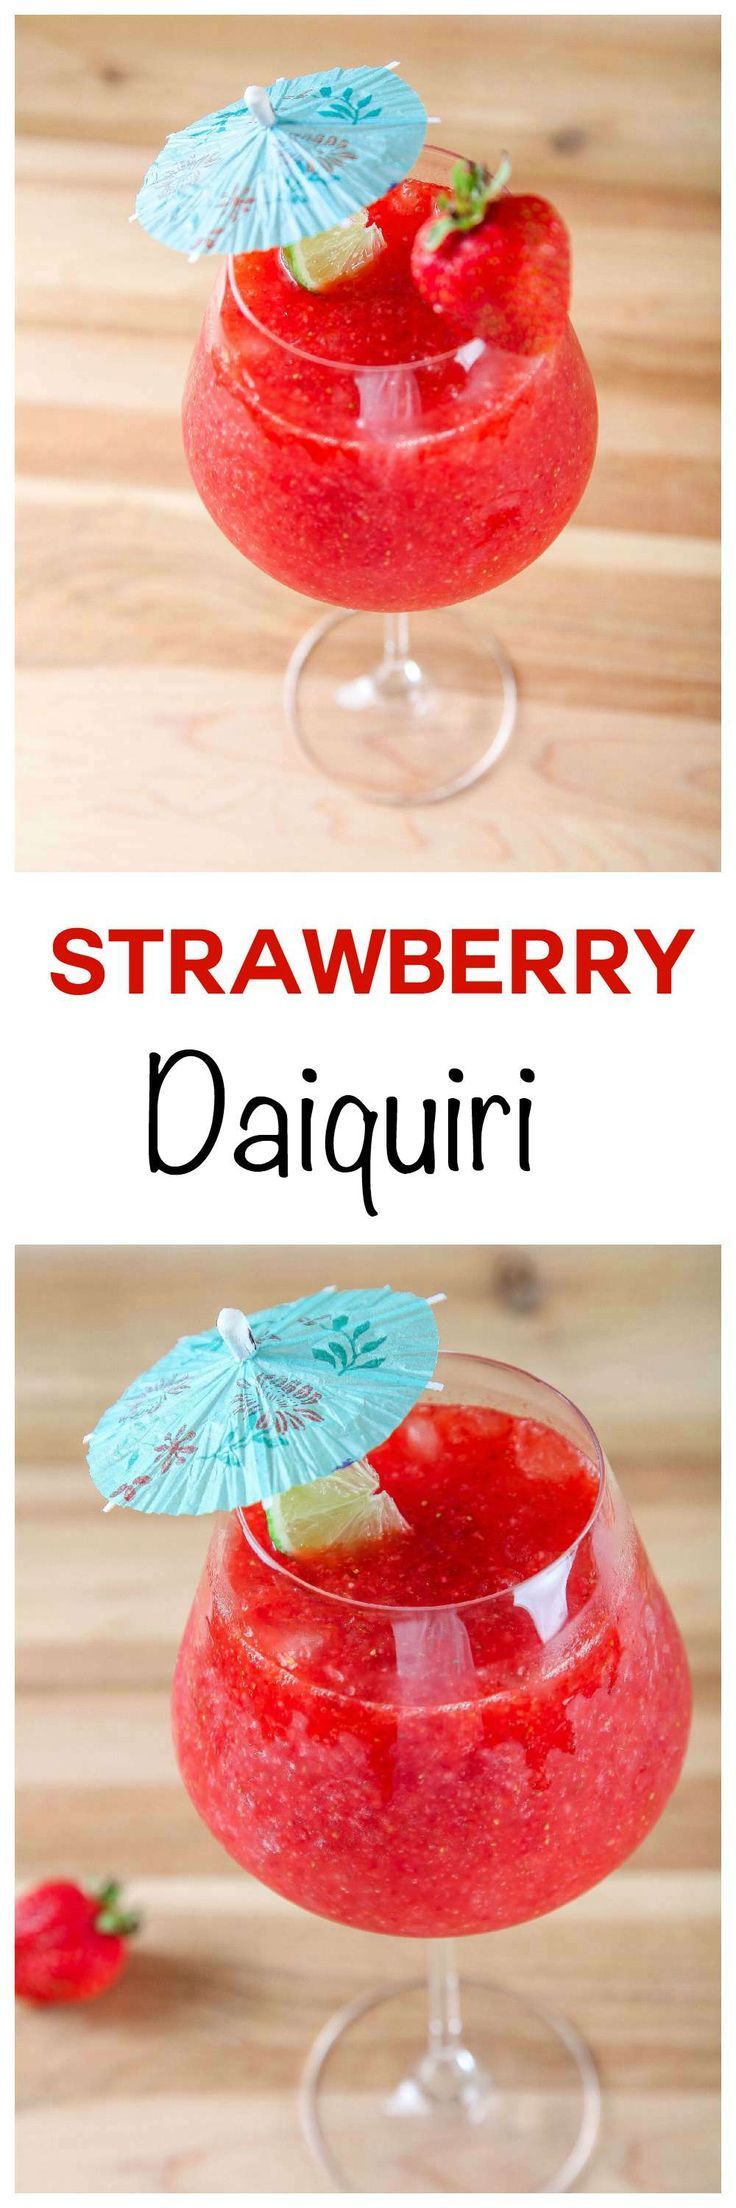 Easy Strawberry Daiquiri: Frosty, sweet, and refreshing cocktail that couldn't be easier to make. Requires